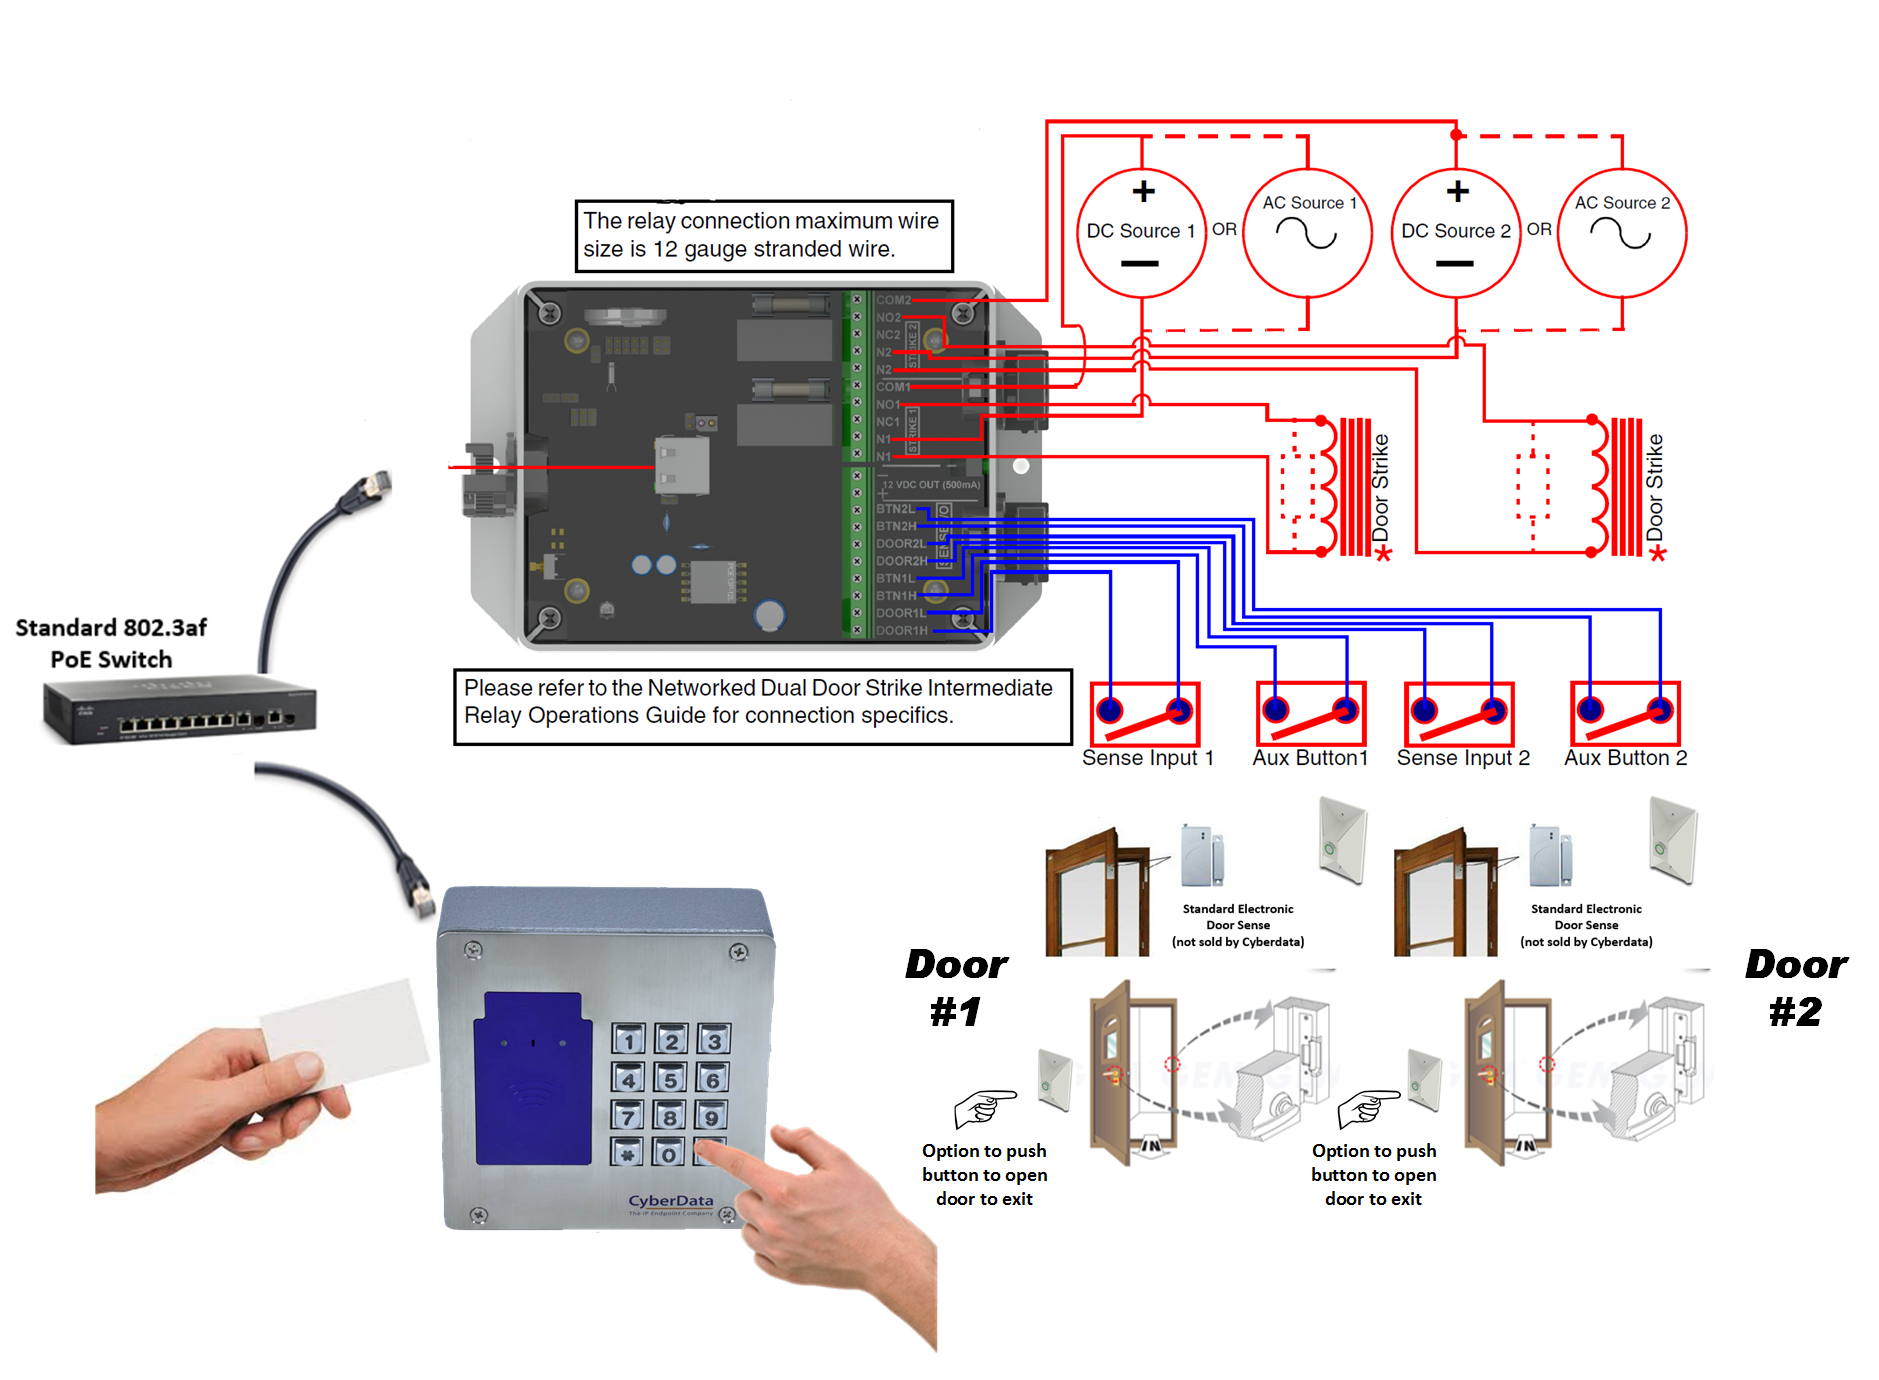 011426 Rfid Keypad Secure Access Control Endpoint Cyberdata Rf Id Full Duplex Tag Block Diagram Connecting To Inductive Type Loads Networked Dual Door Strike Relay We Highly Recommend That Load And High Current Devices Use Our